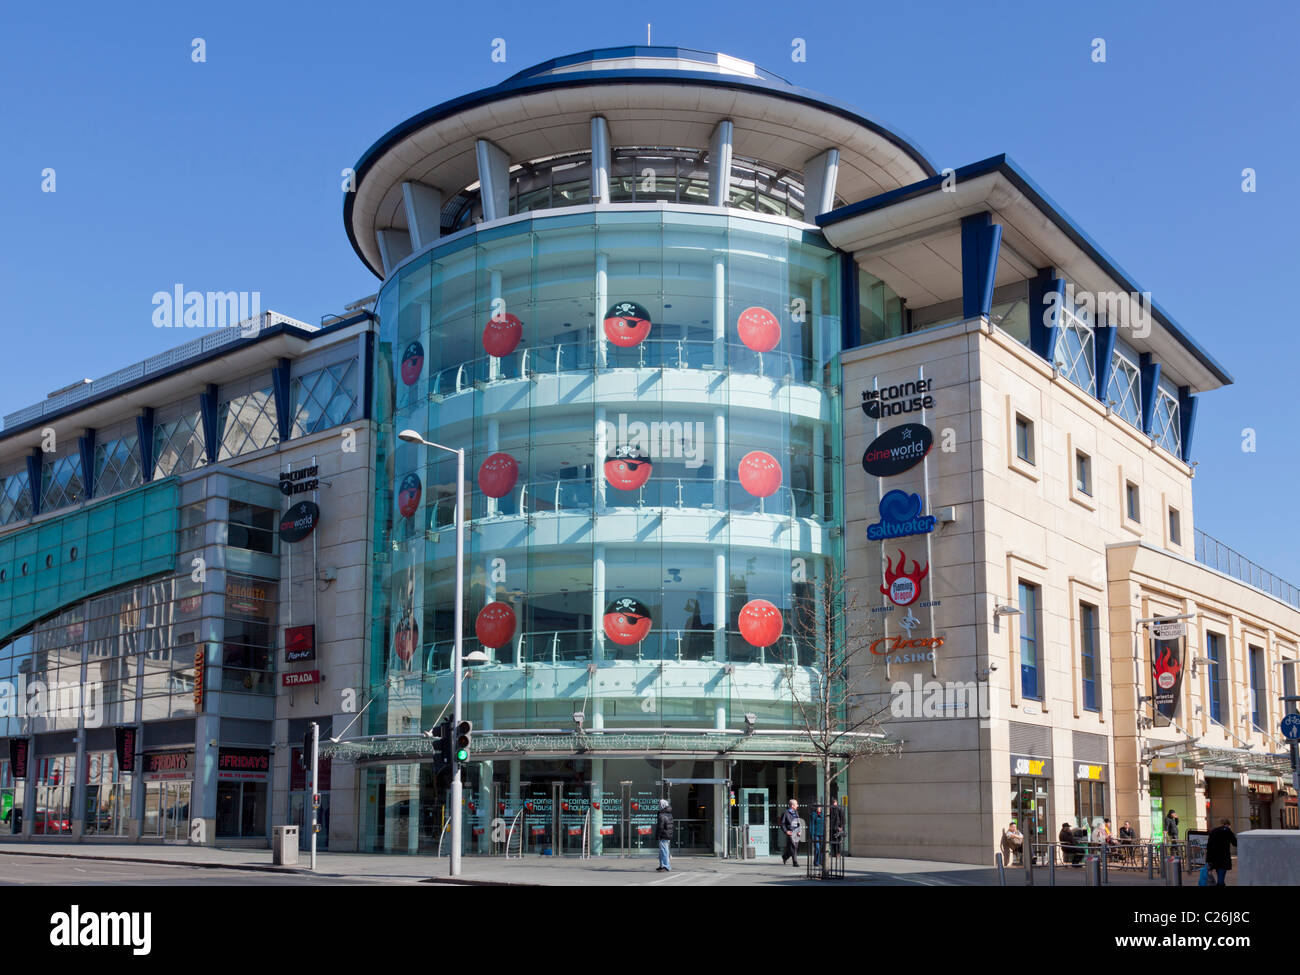 The Cornerhouse is leisure complex in the city centre of Nottingham, England UK GB EU Europe - Stock Image